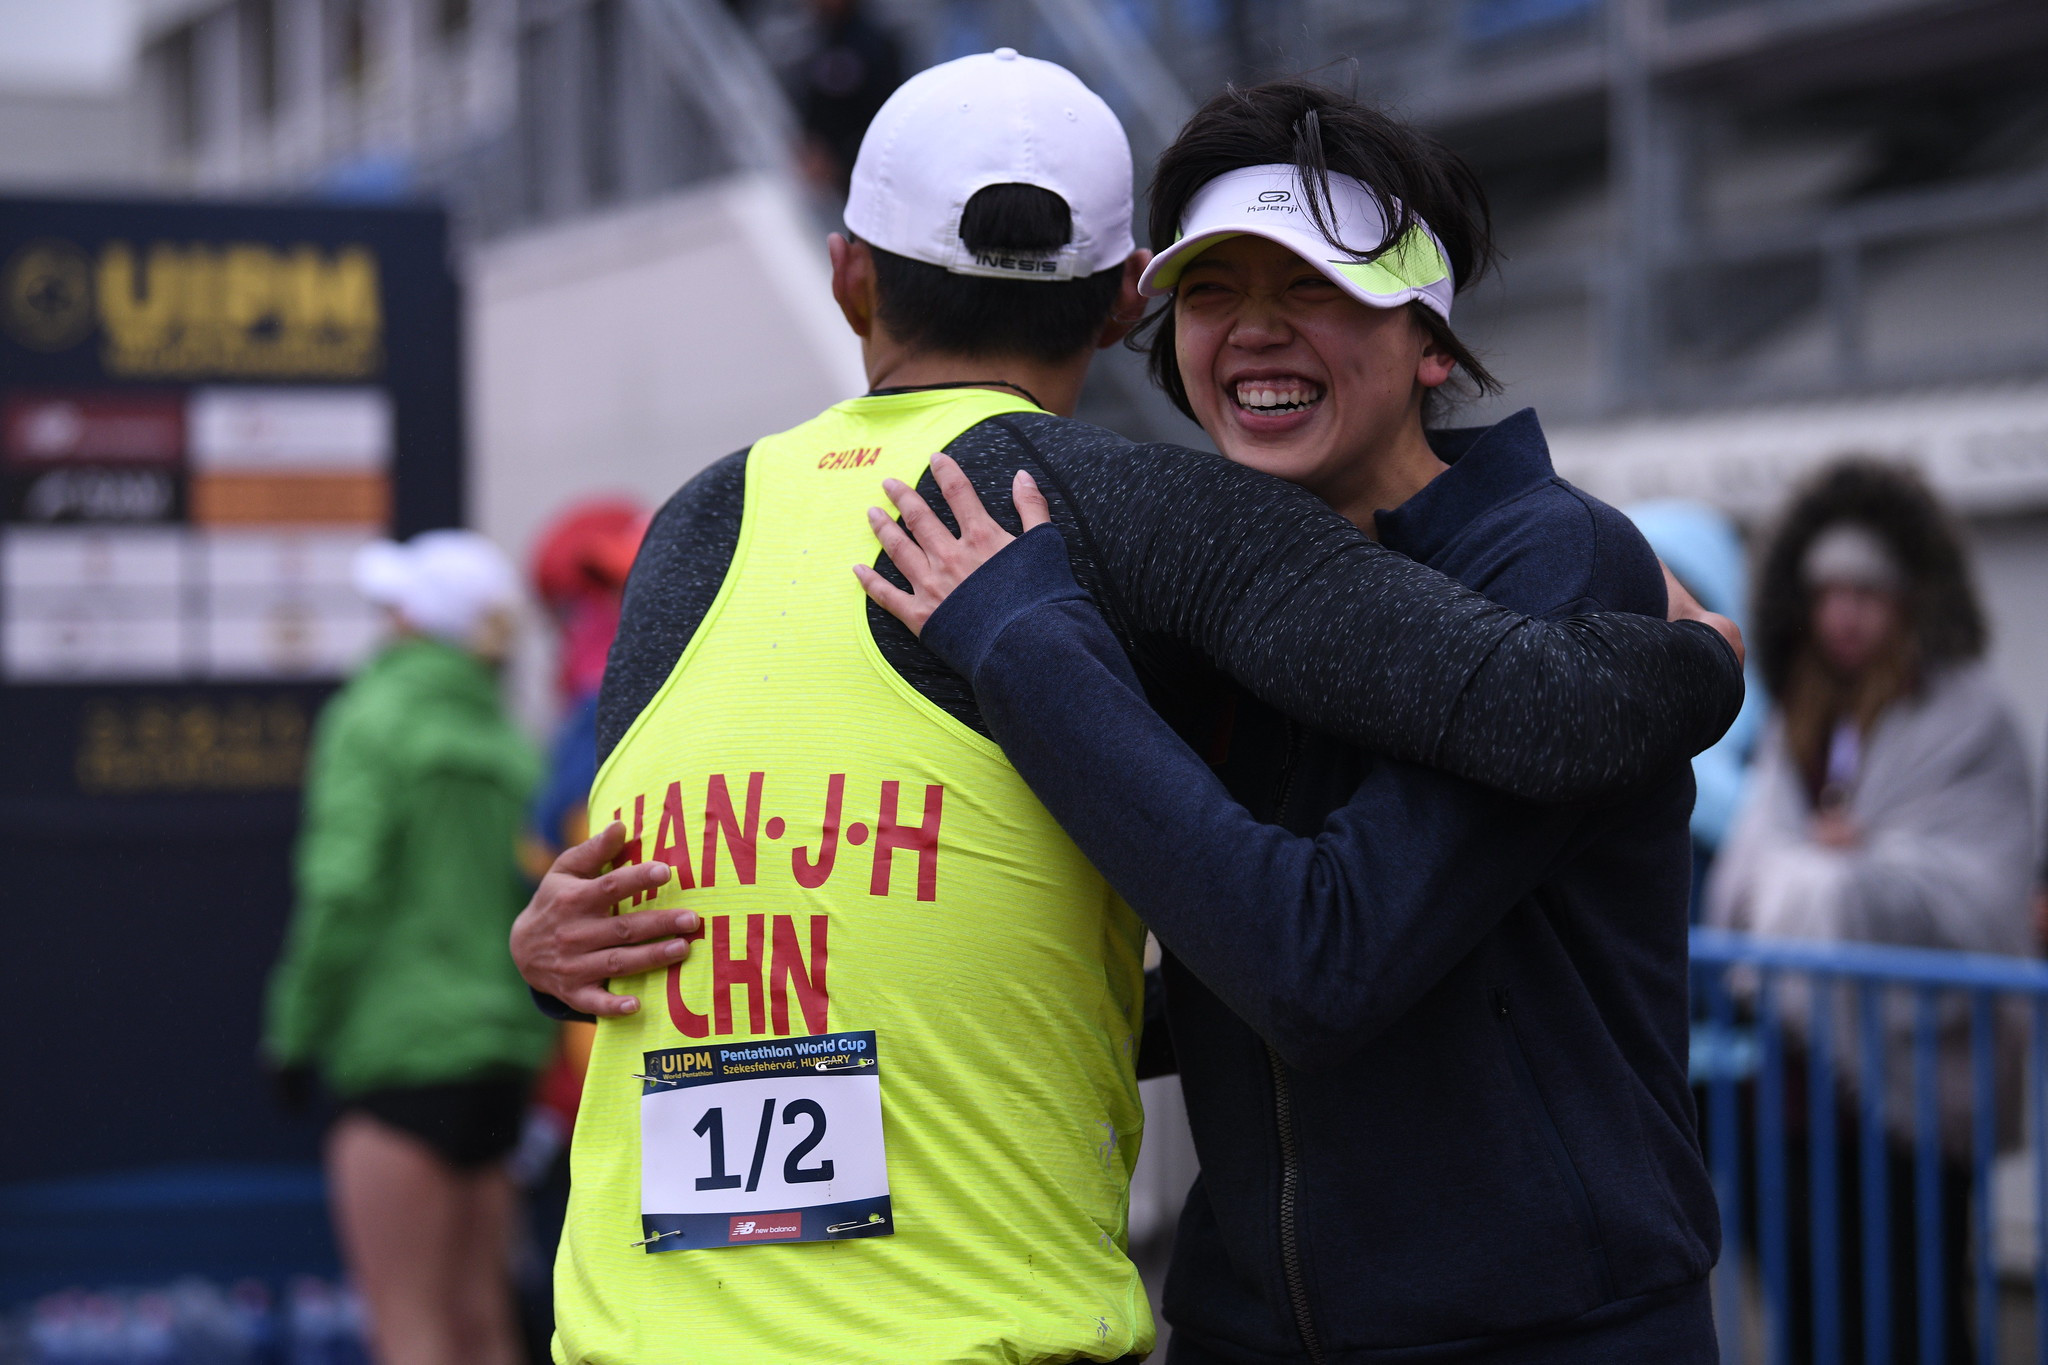 Bian Yufei and Han Jiahao of China won the mixed relay on the final day of the event ©UIPM